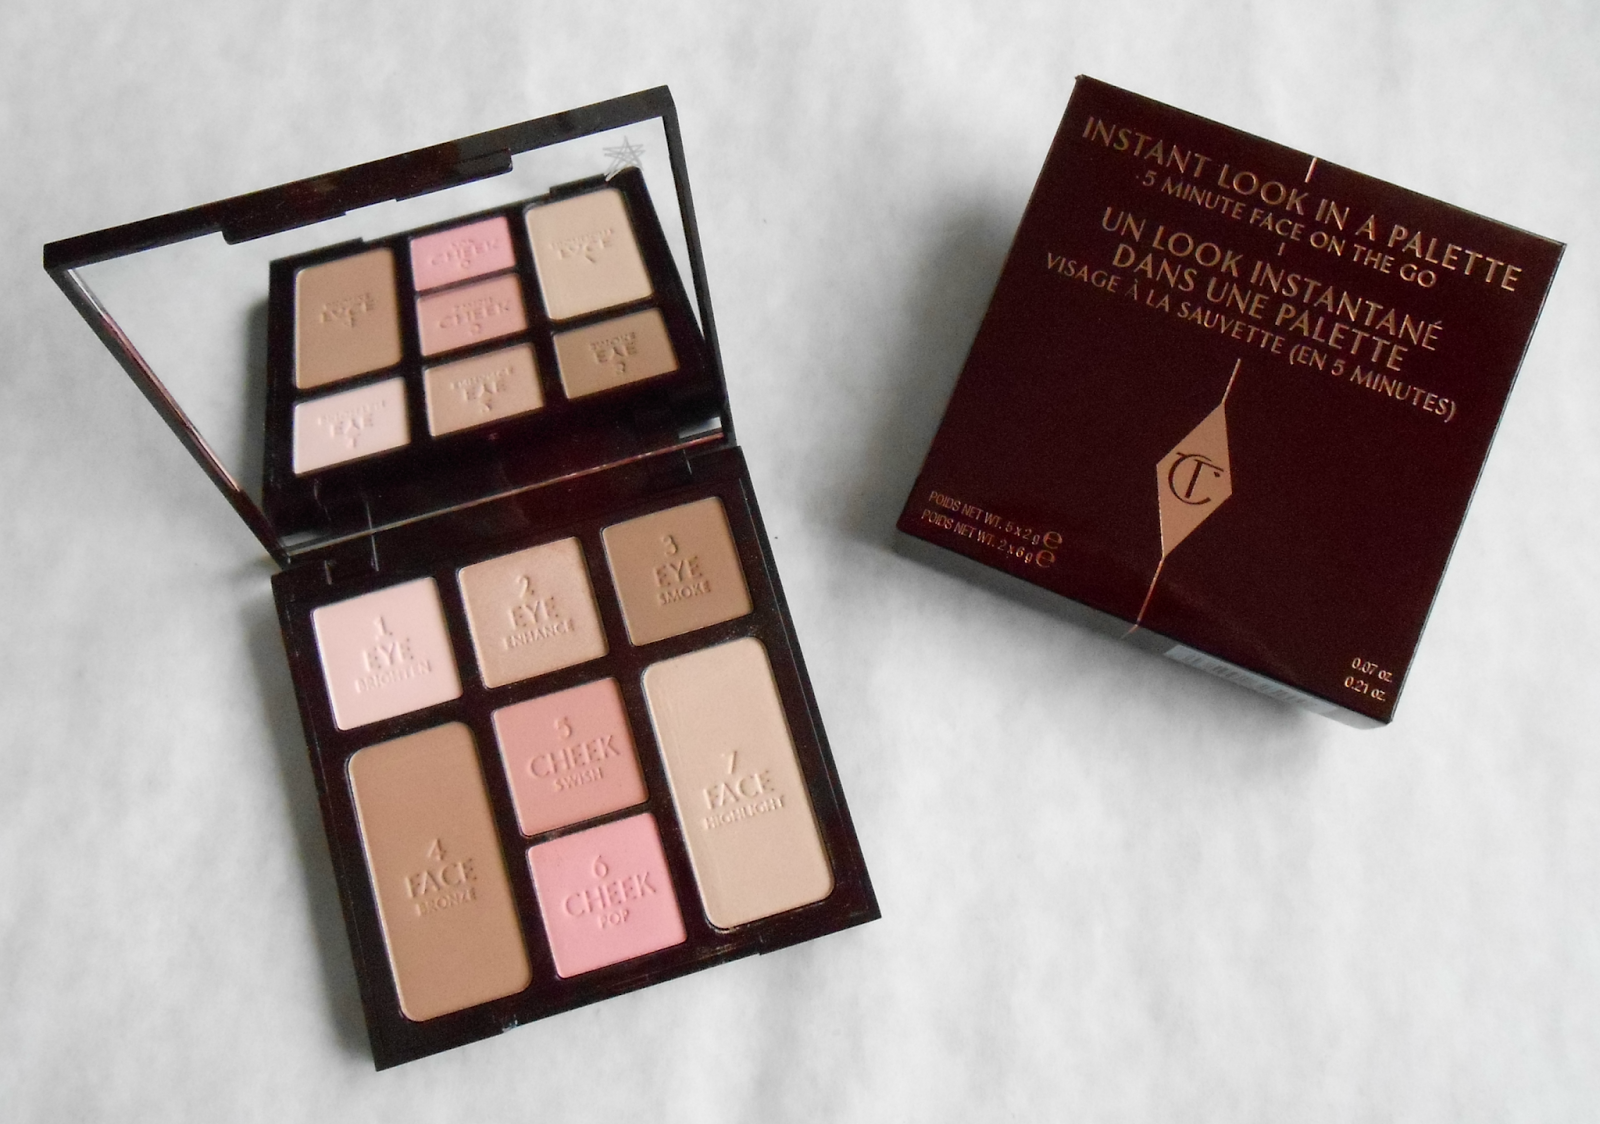 Charlotte Tilbury Instant Look Palette Review